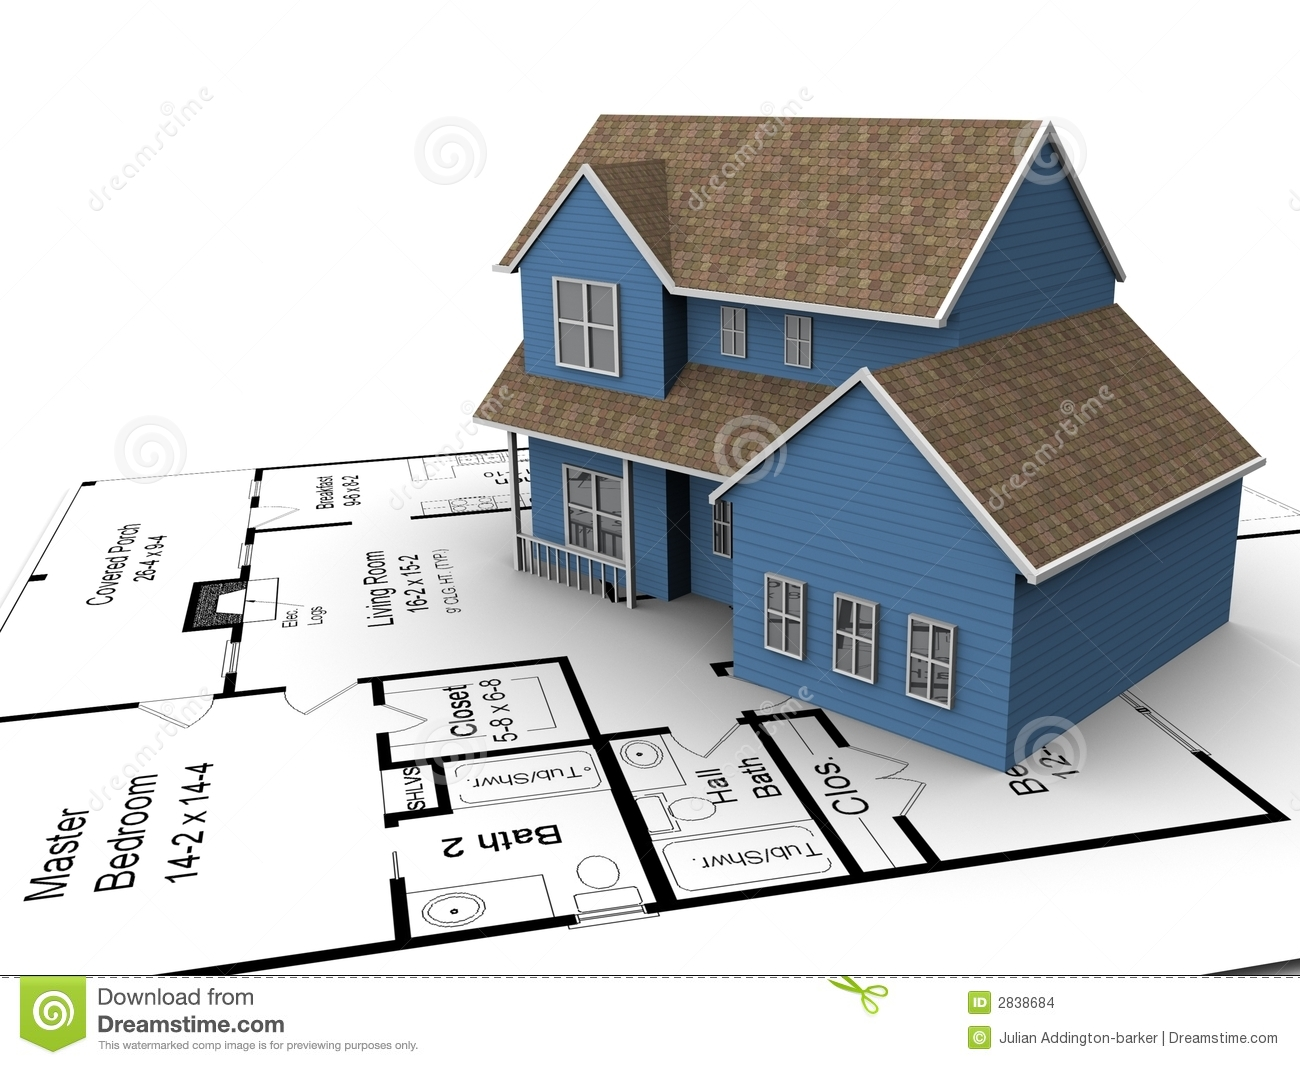 New house plans stock illustration image of design for New house plans with pictures